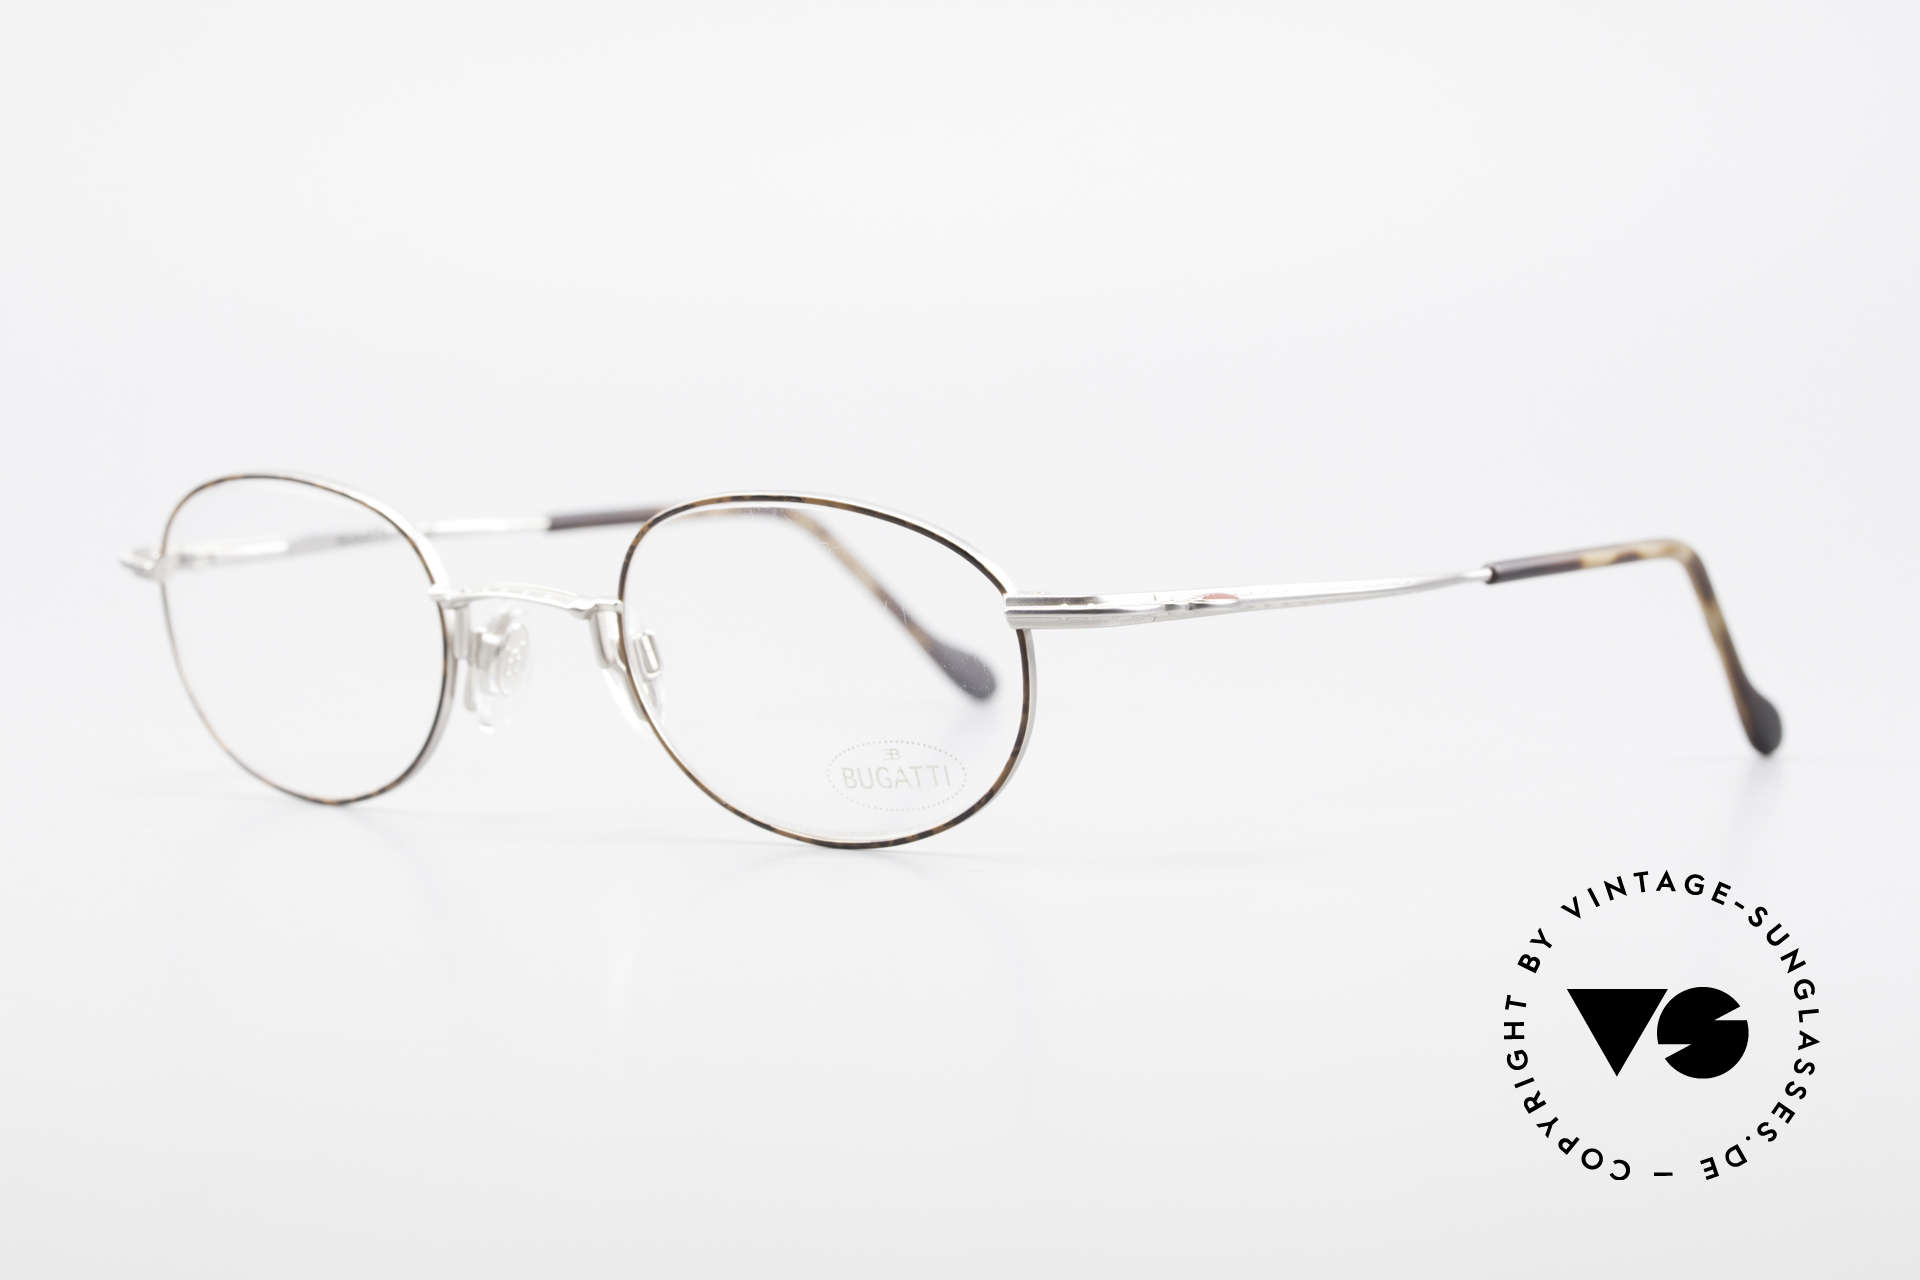 Bugatti 23547 Rare 90's Titanium Eyeglasses, ergonomic temples and nose pad for a 1st class comfort, Made for Men and Women